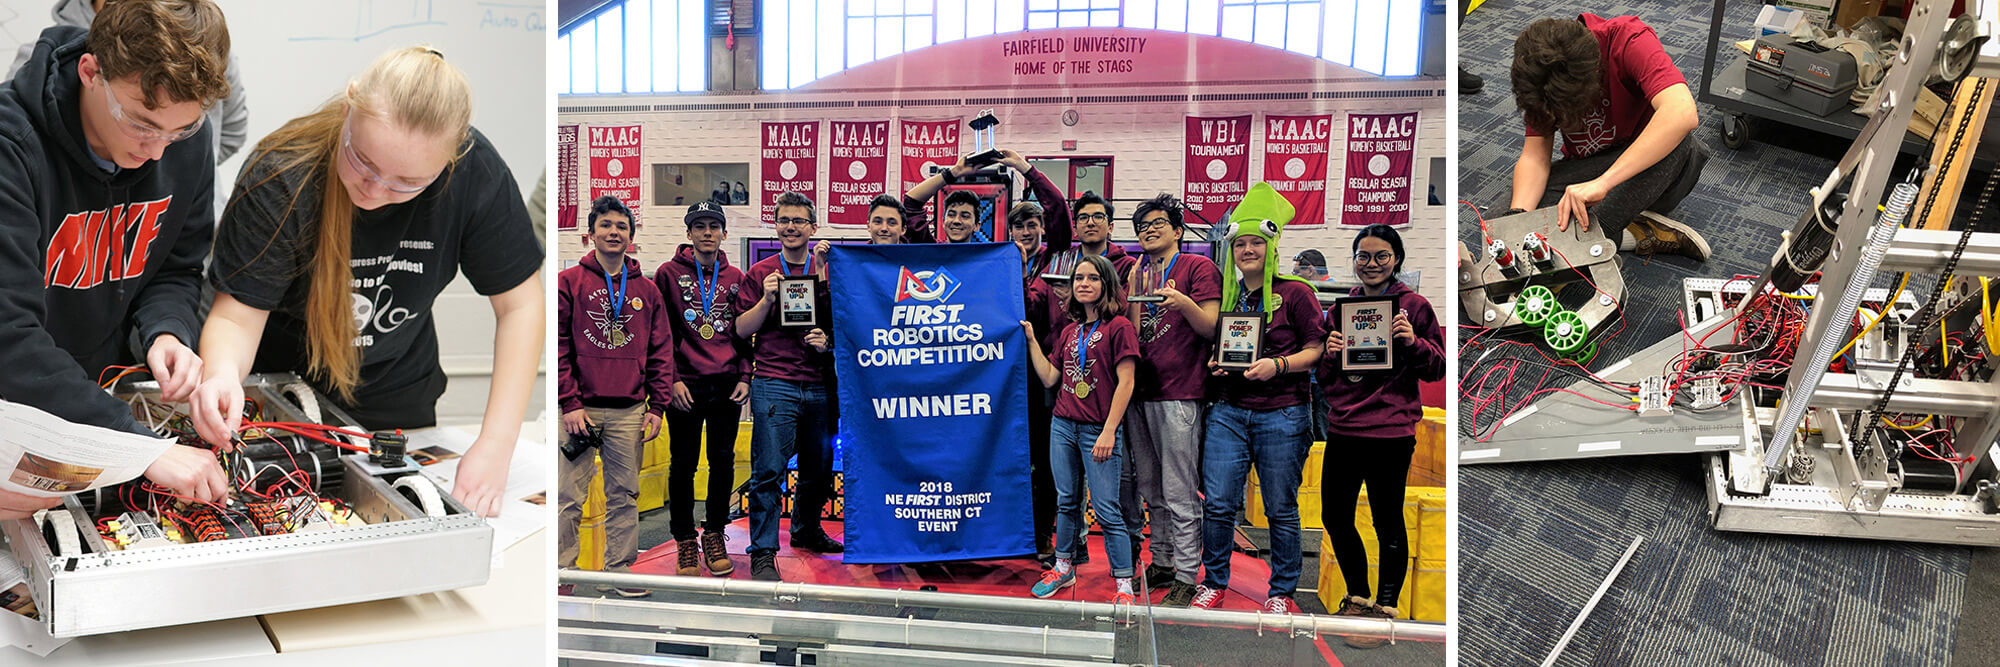 08-FIRST Robotics Competition Winner 2018 NE FIRST District Southern CT Event